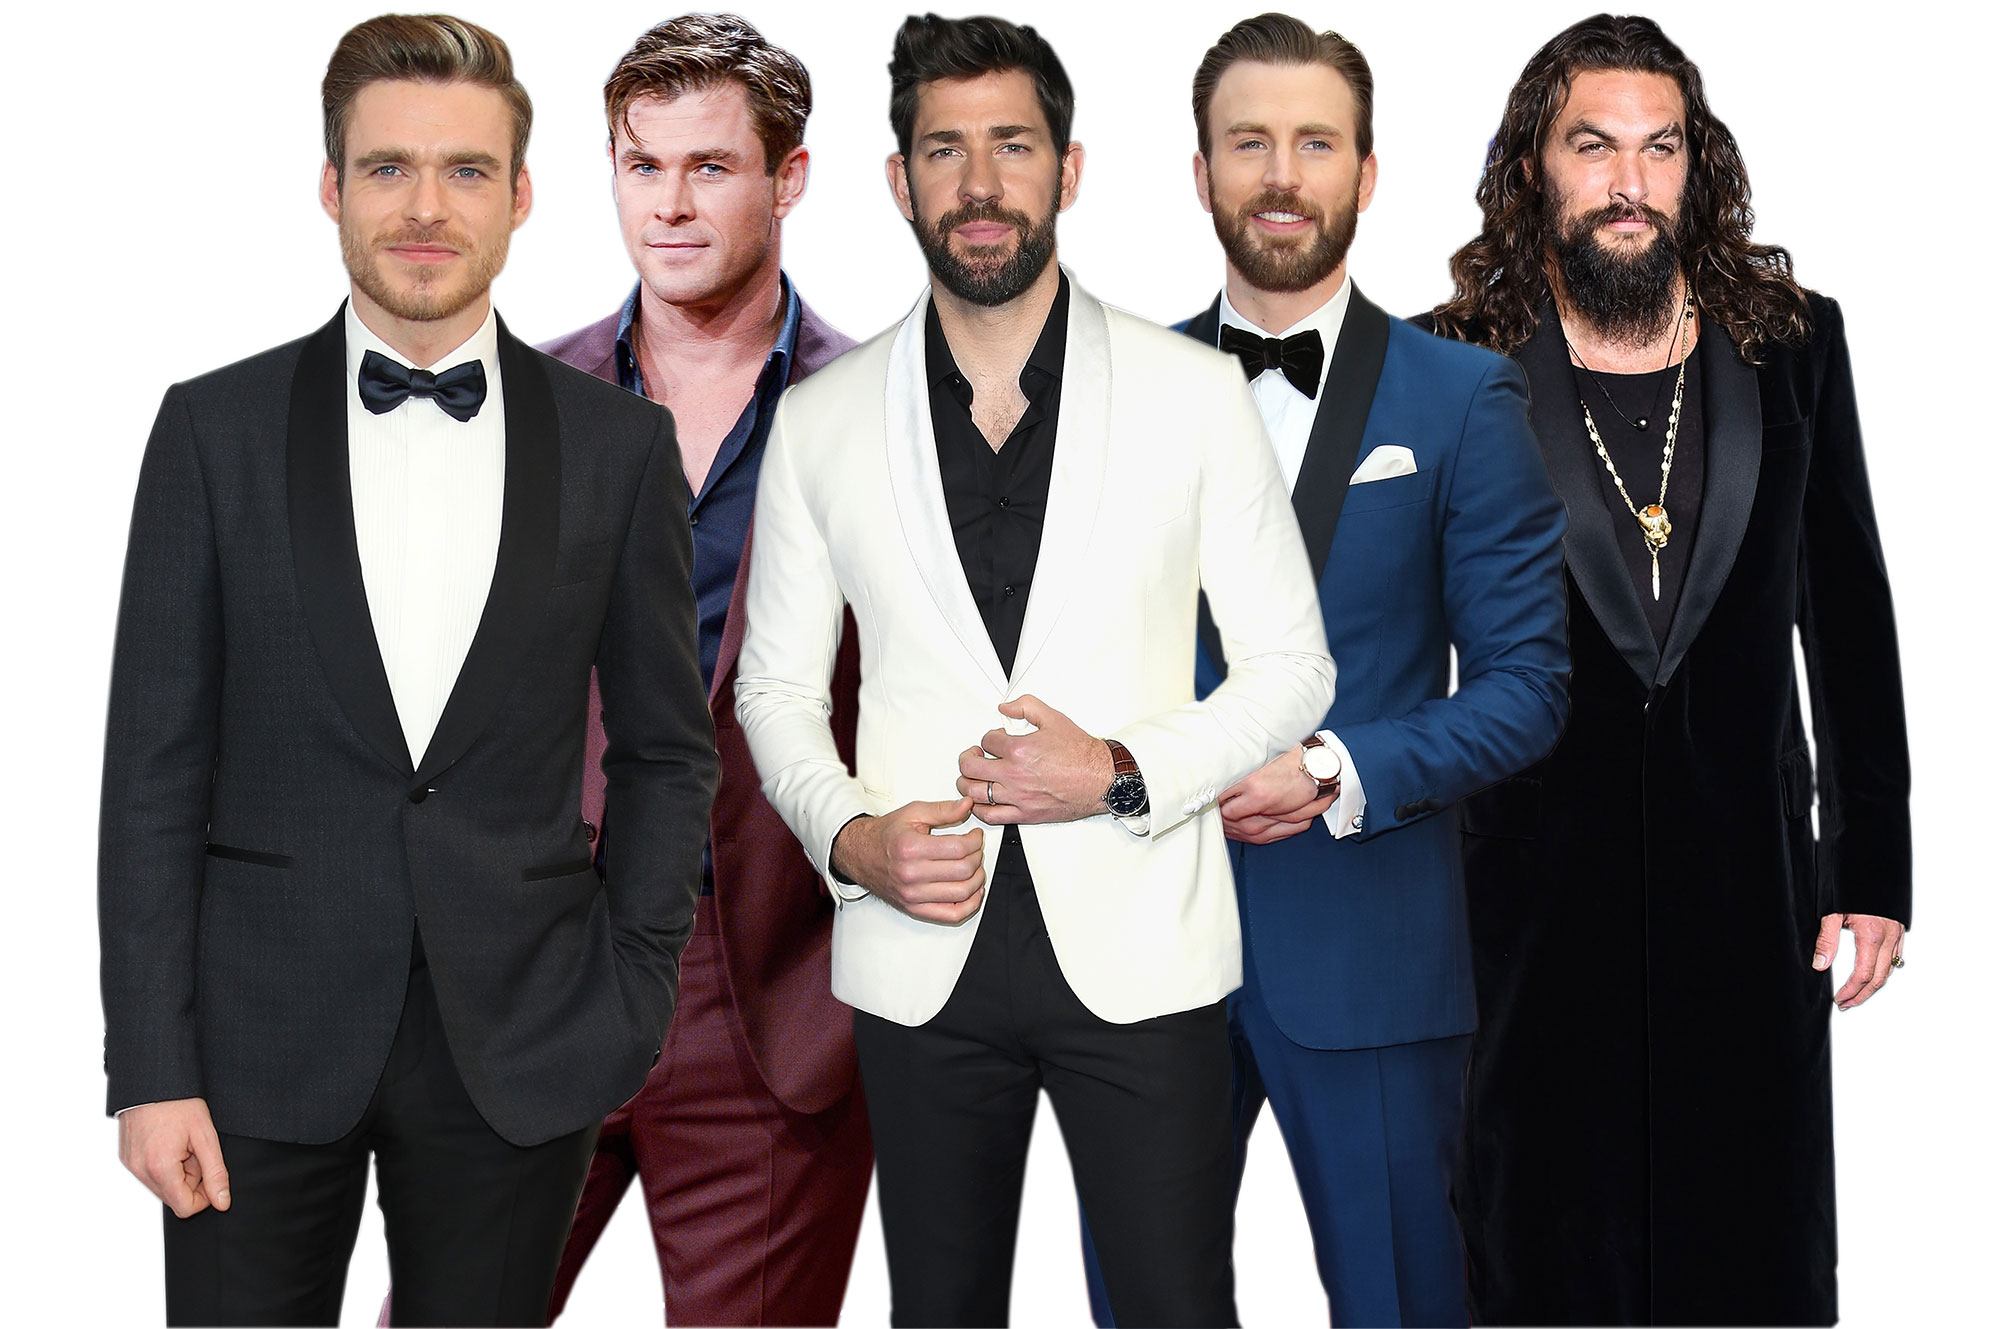 Hollywood's Hottest Hunks Top 5